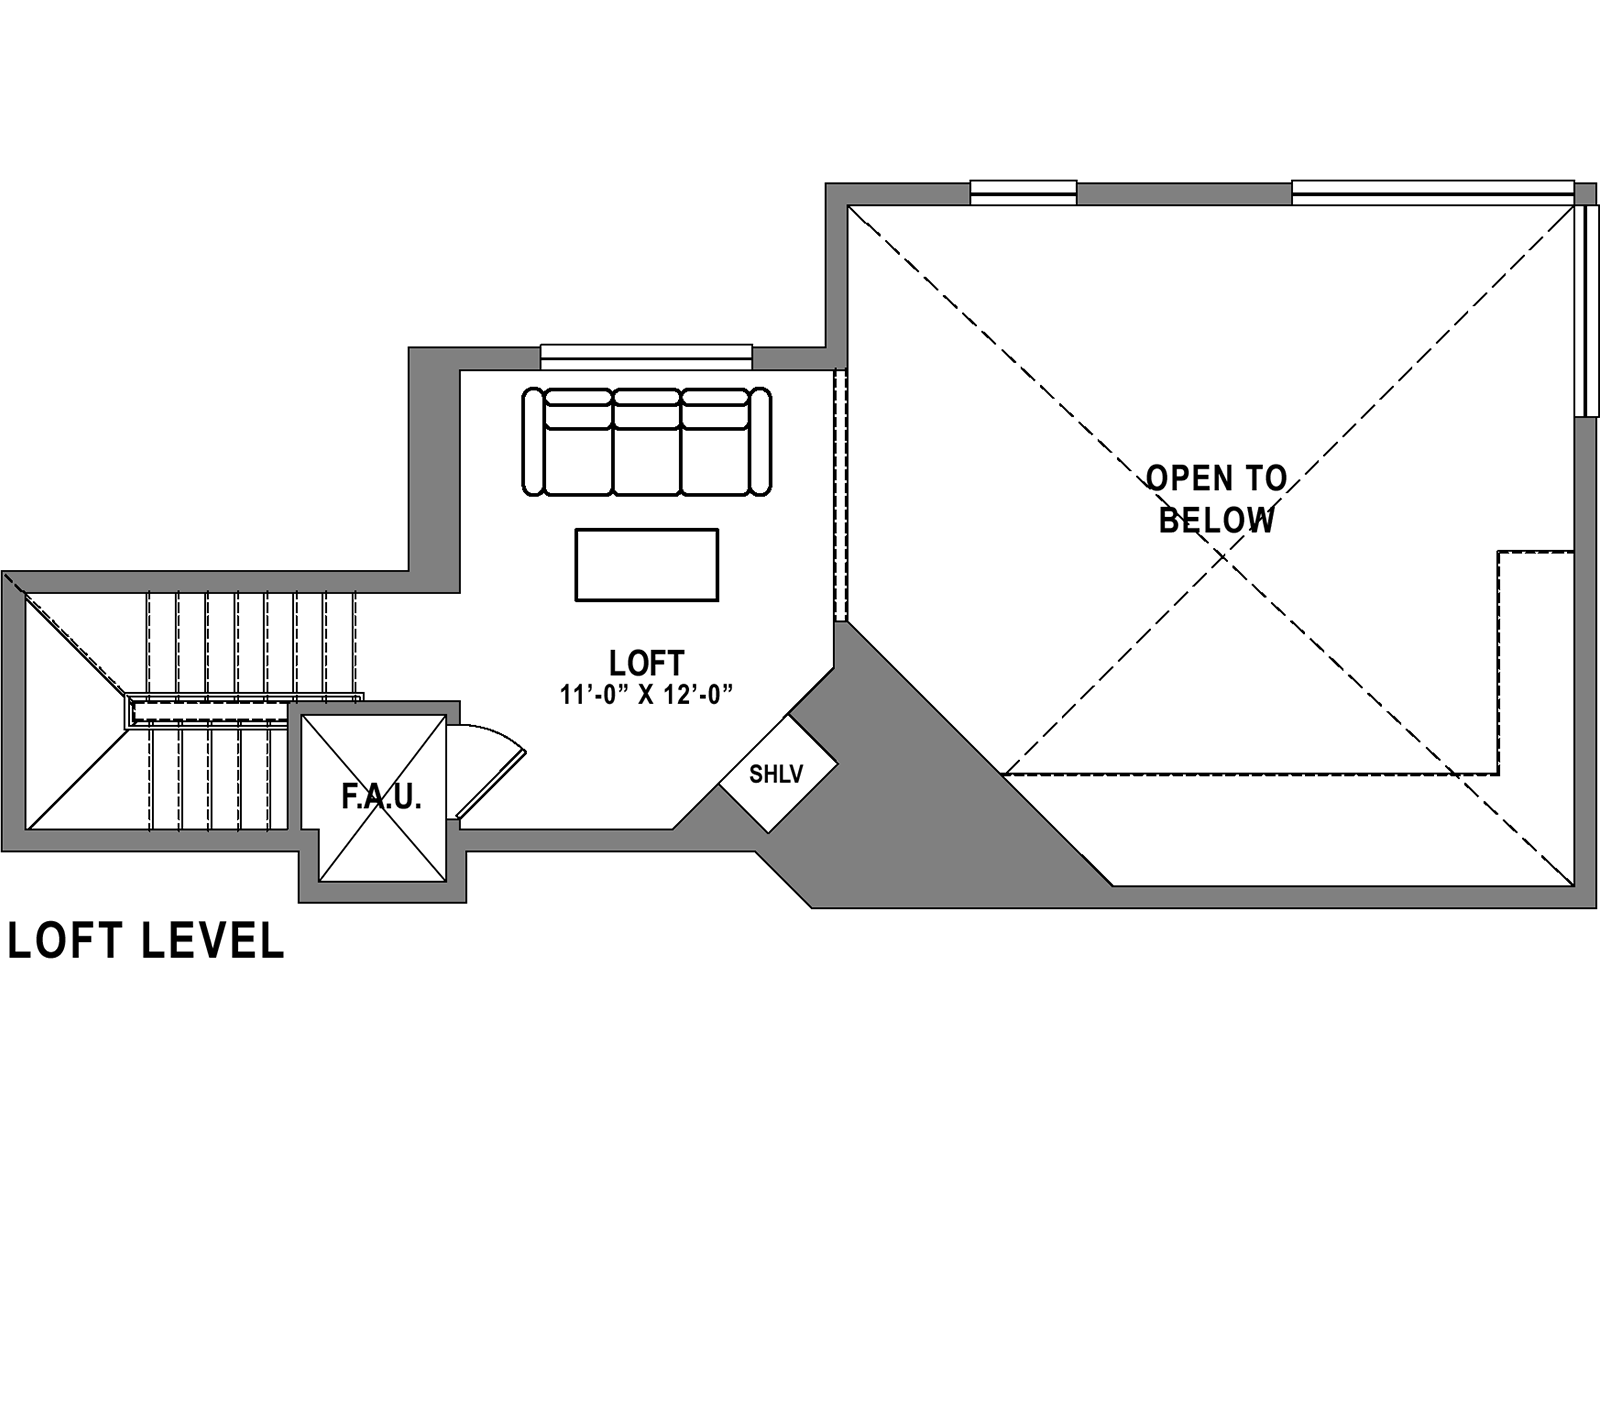 Plan C1 Loft - 3 Bedroom+ Loft, 2 Bath Floor Plan